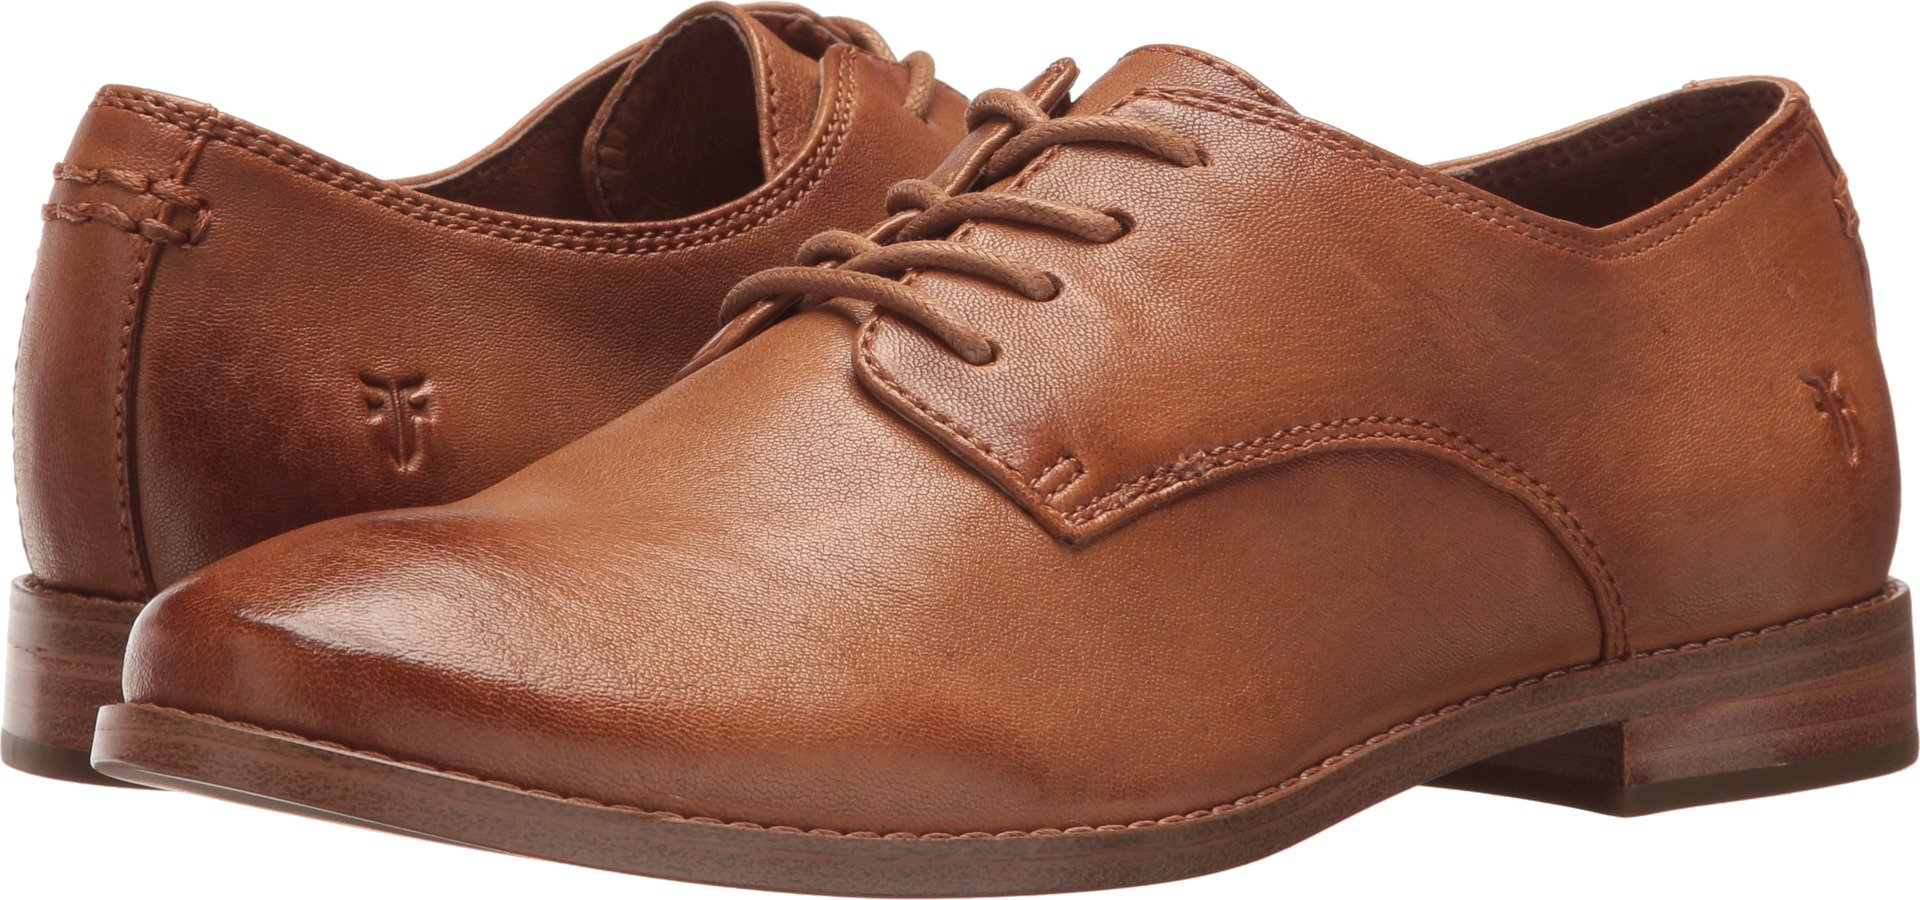 Frye Womens Anna Oxford